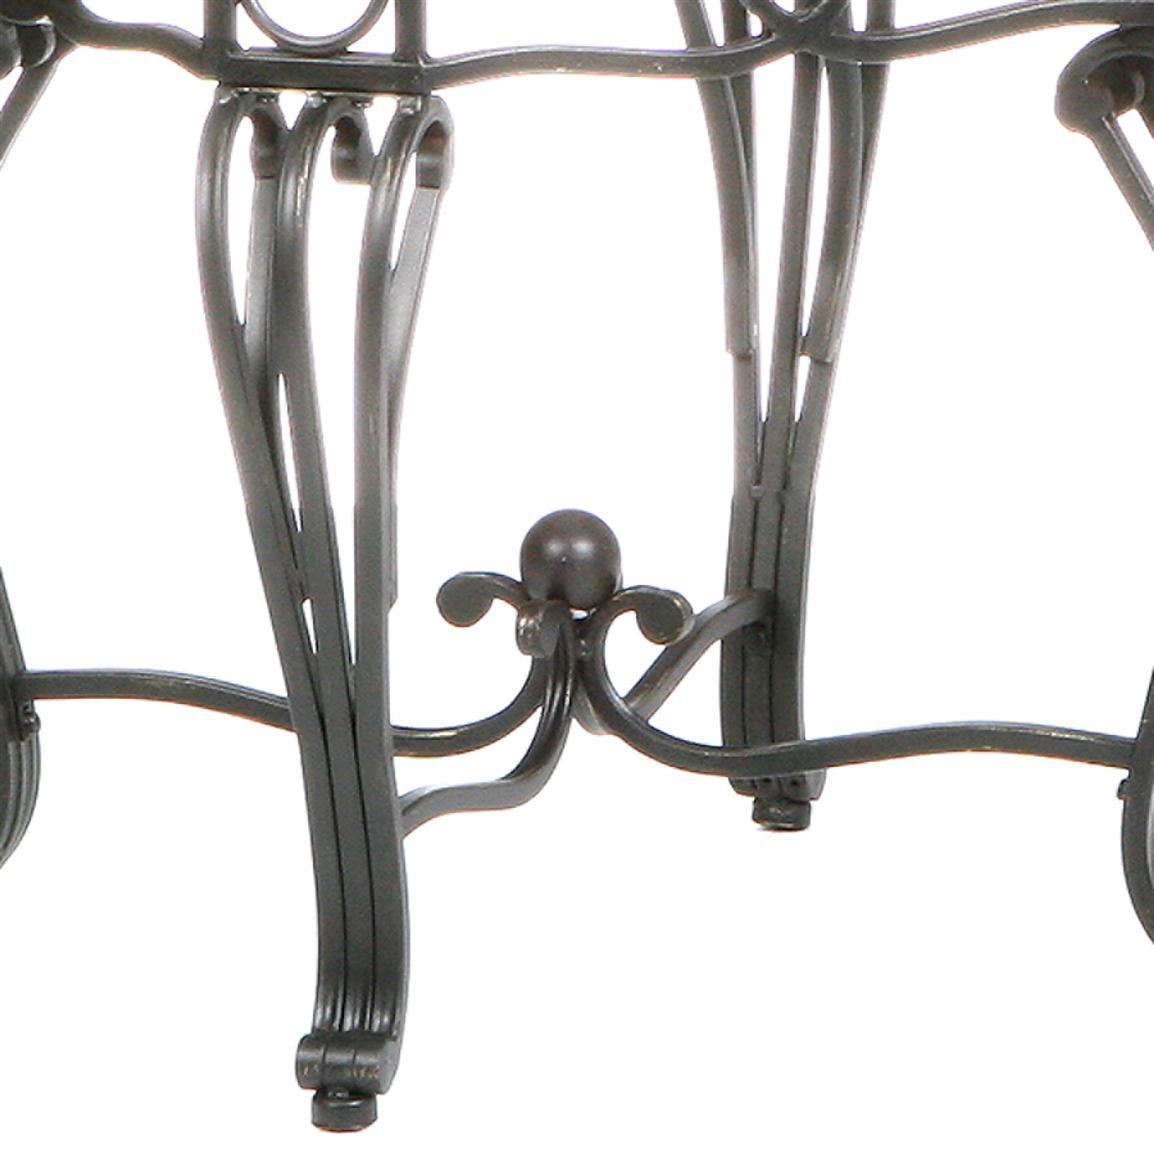 The metal legs are hand crafted with delicate curves and symmetrical details from top to bottom.